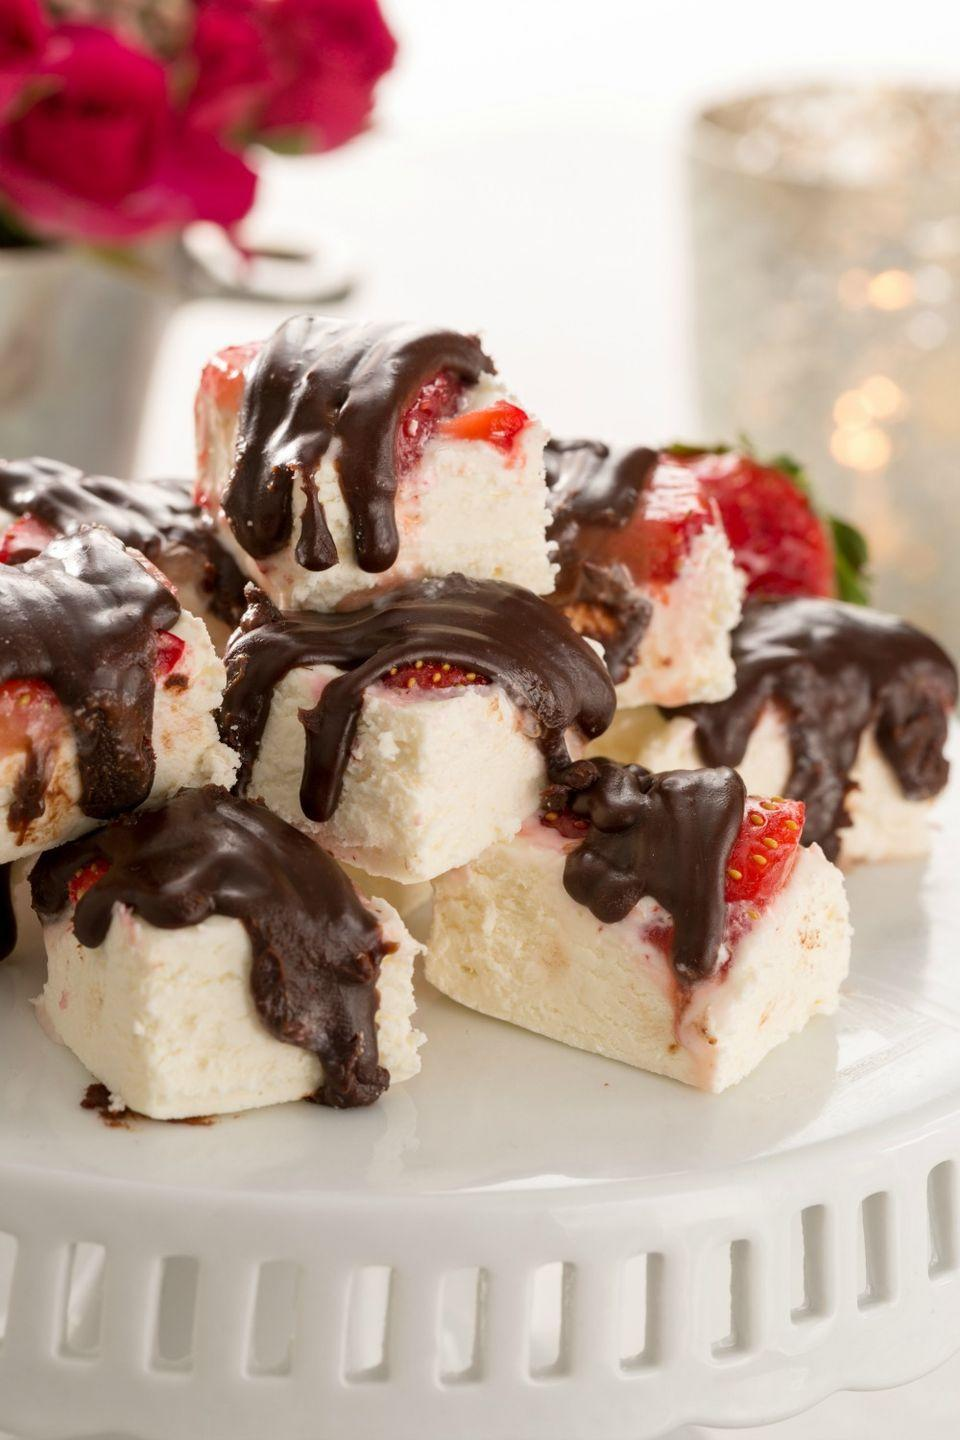 "<p>It's the sexiest dessert you'll ever make.</p><p>Get the recipe from <a href=""https://www.delish.com/cooking/recipes/a45914/chocolate-covered-strawberry-fudge-recipe/"" rel=""nofollow noopener"" target=""_blank"" data-ylk=""slk:Delish"" class=""link rapid-noclick-resp"">Delish</a>.</p>"